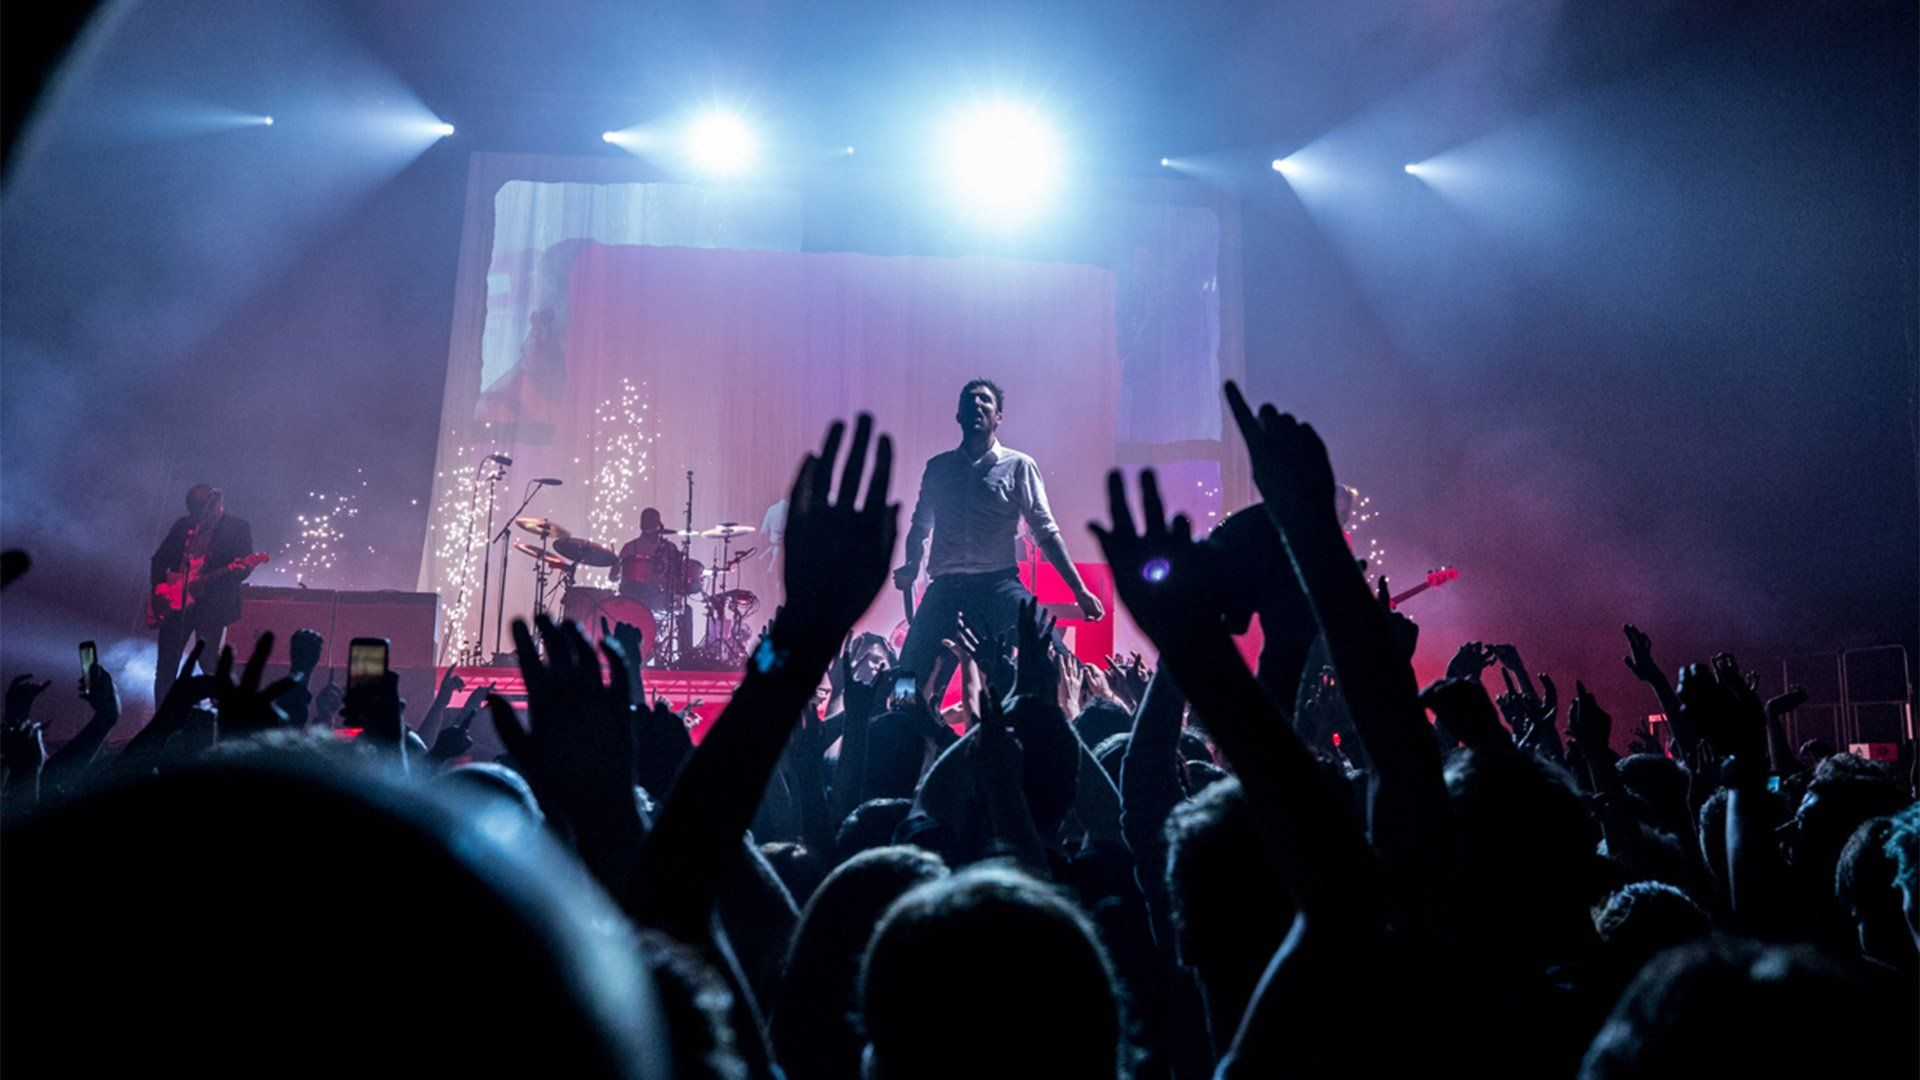 A band perform on stage, with audience hands waving and clapping. Photo by Ben Morse.